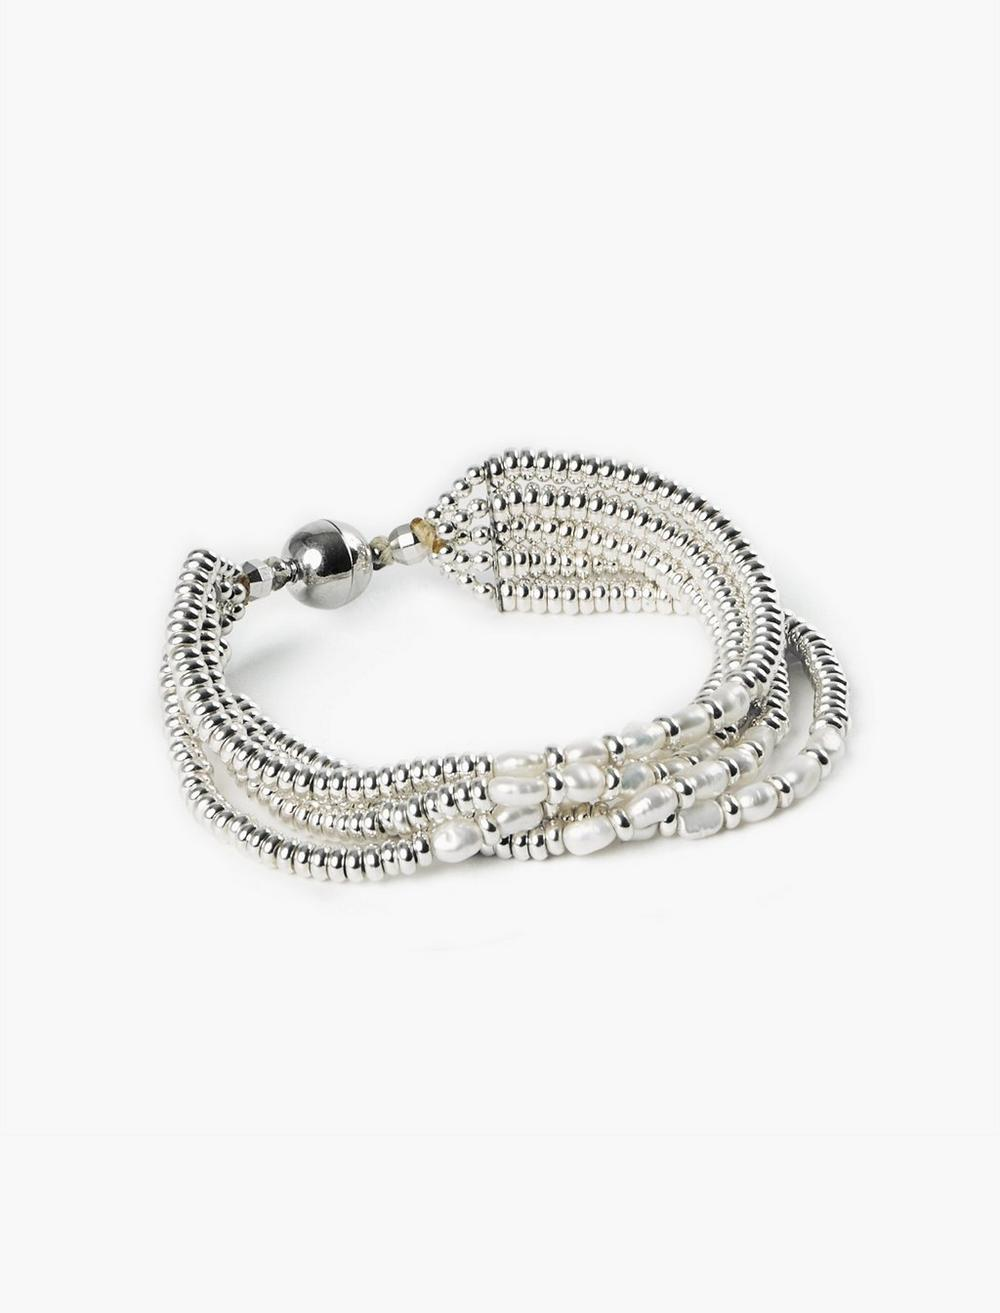 PEARL AND SILVER BEADED BRACELET, image 1